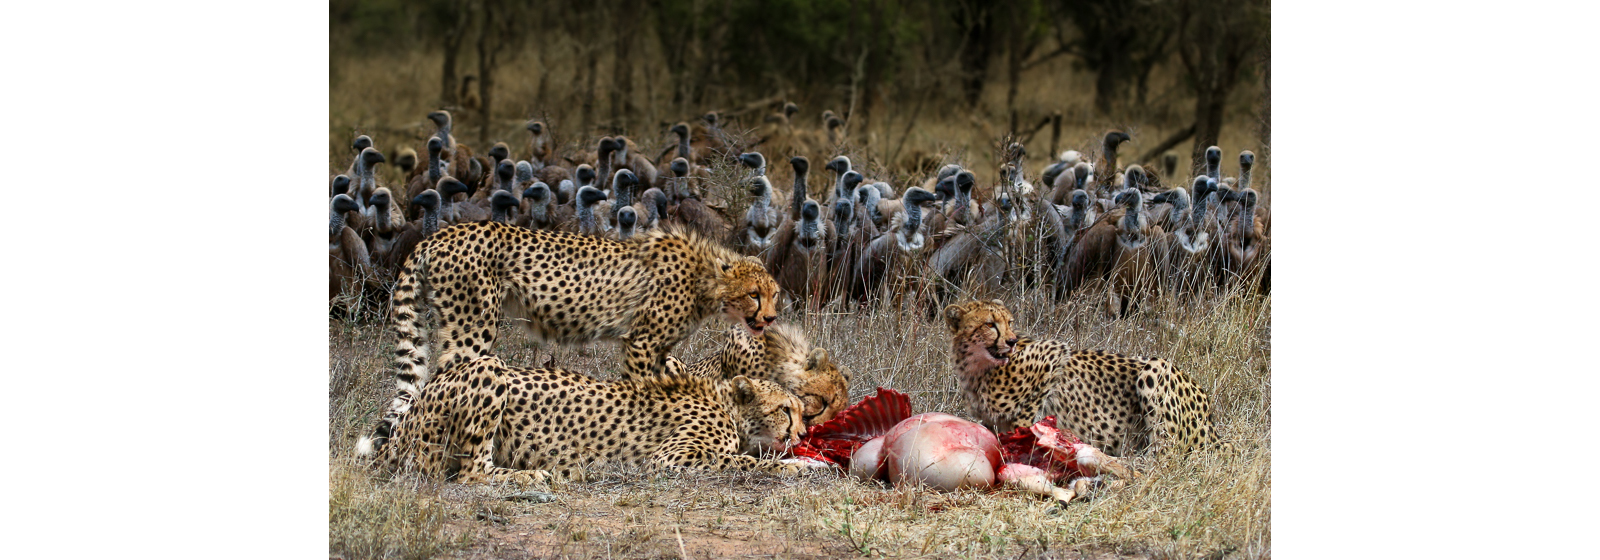 """The audience"" in Thornybush Nature Reserve ©Alex Dyason"